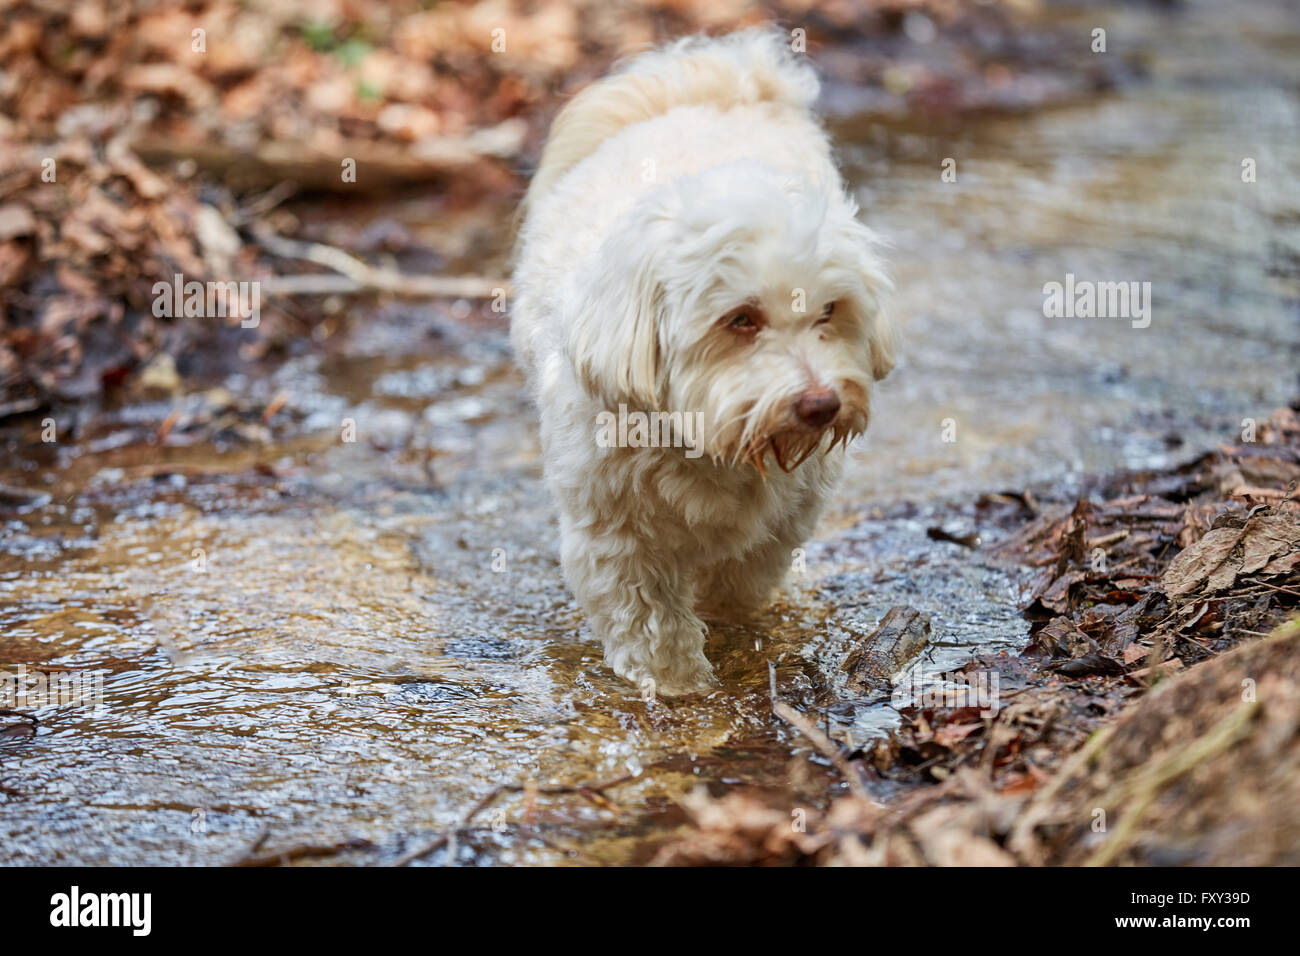 White havanese dog drinking water from a stream in a forest Stock Photo